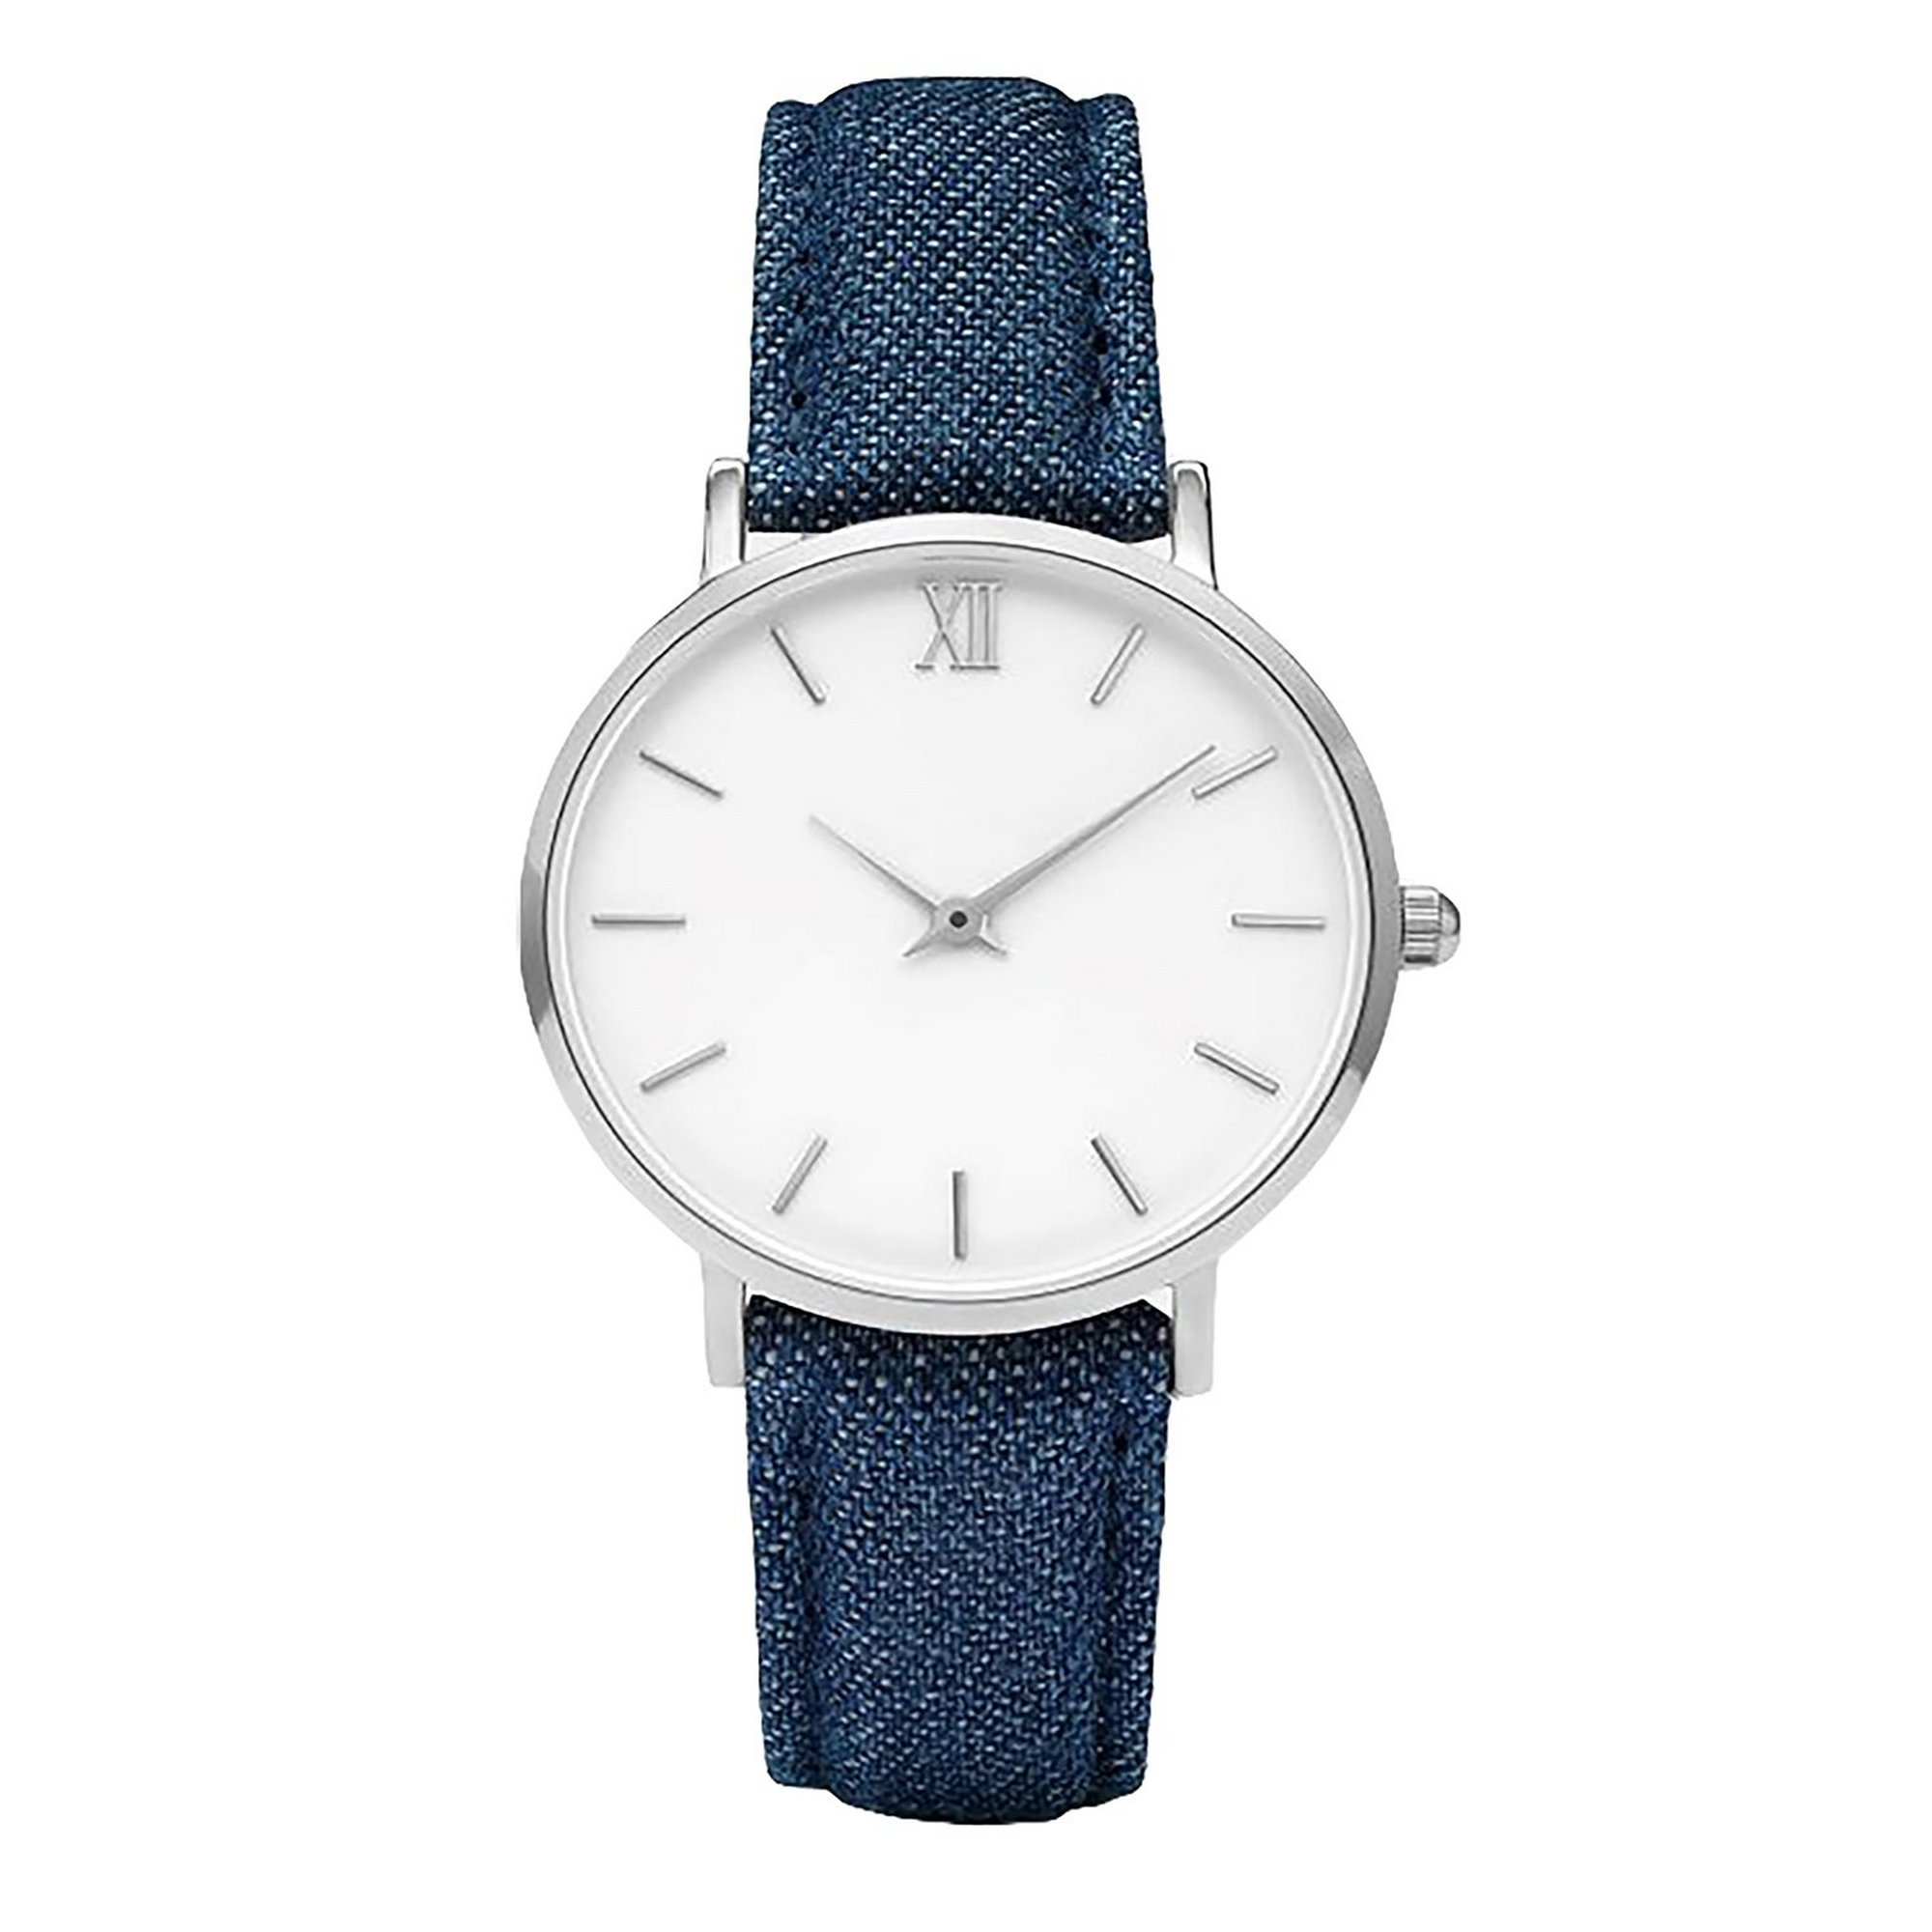 Image of Citron Blue Strap Watch